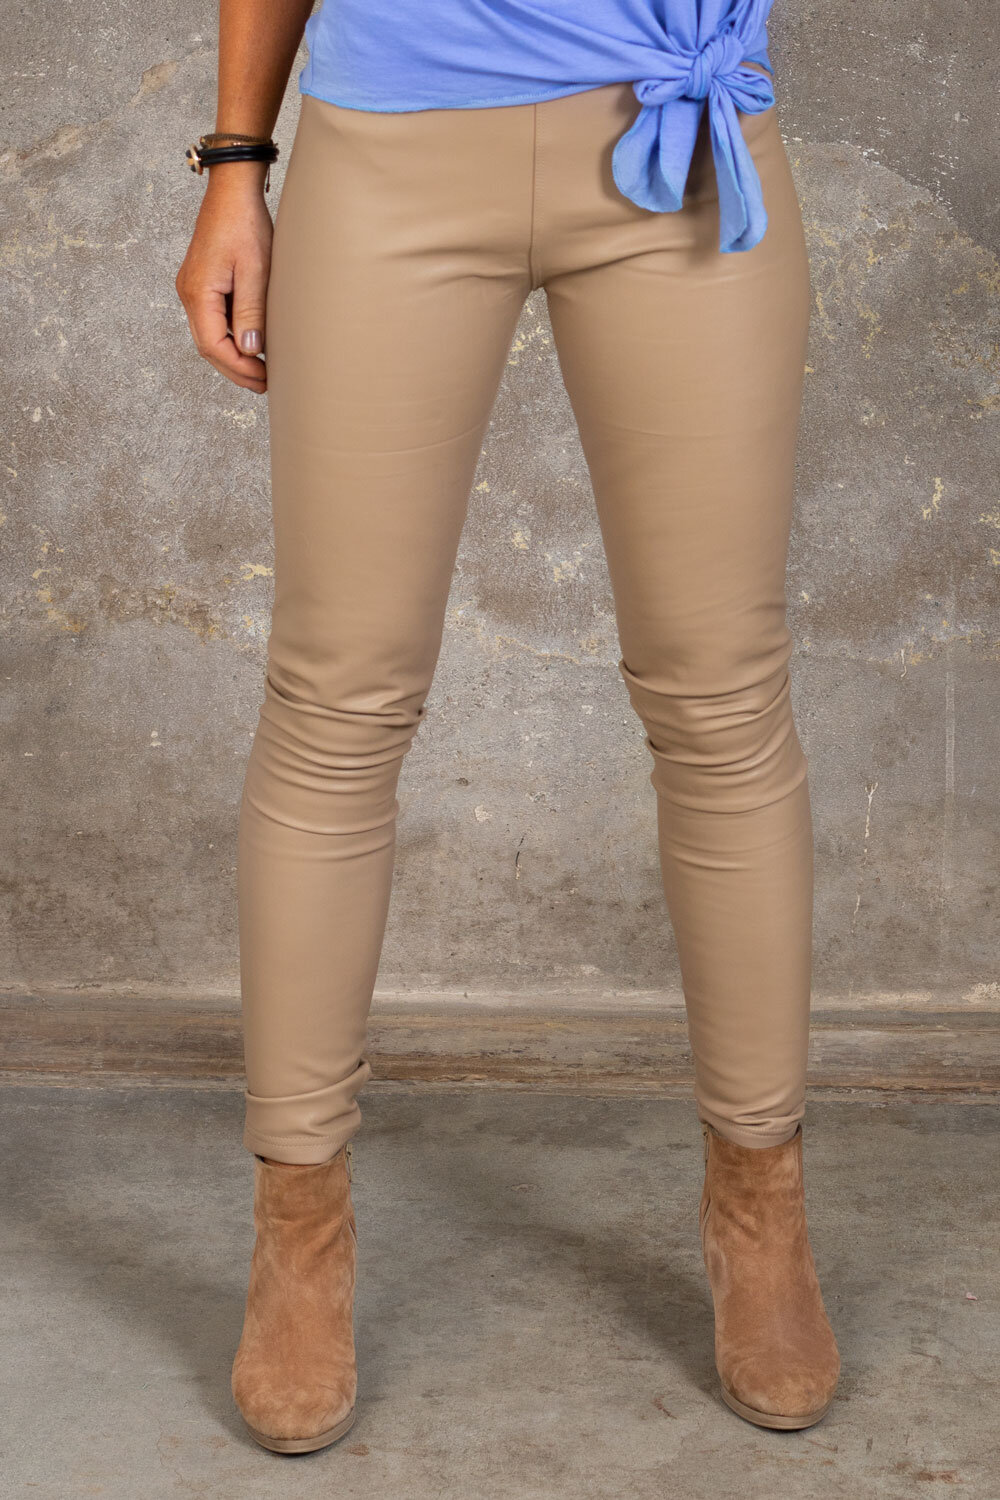 Fejkskinn leggings - VS18013-1-10 - Beige